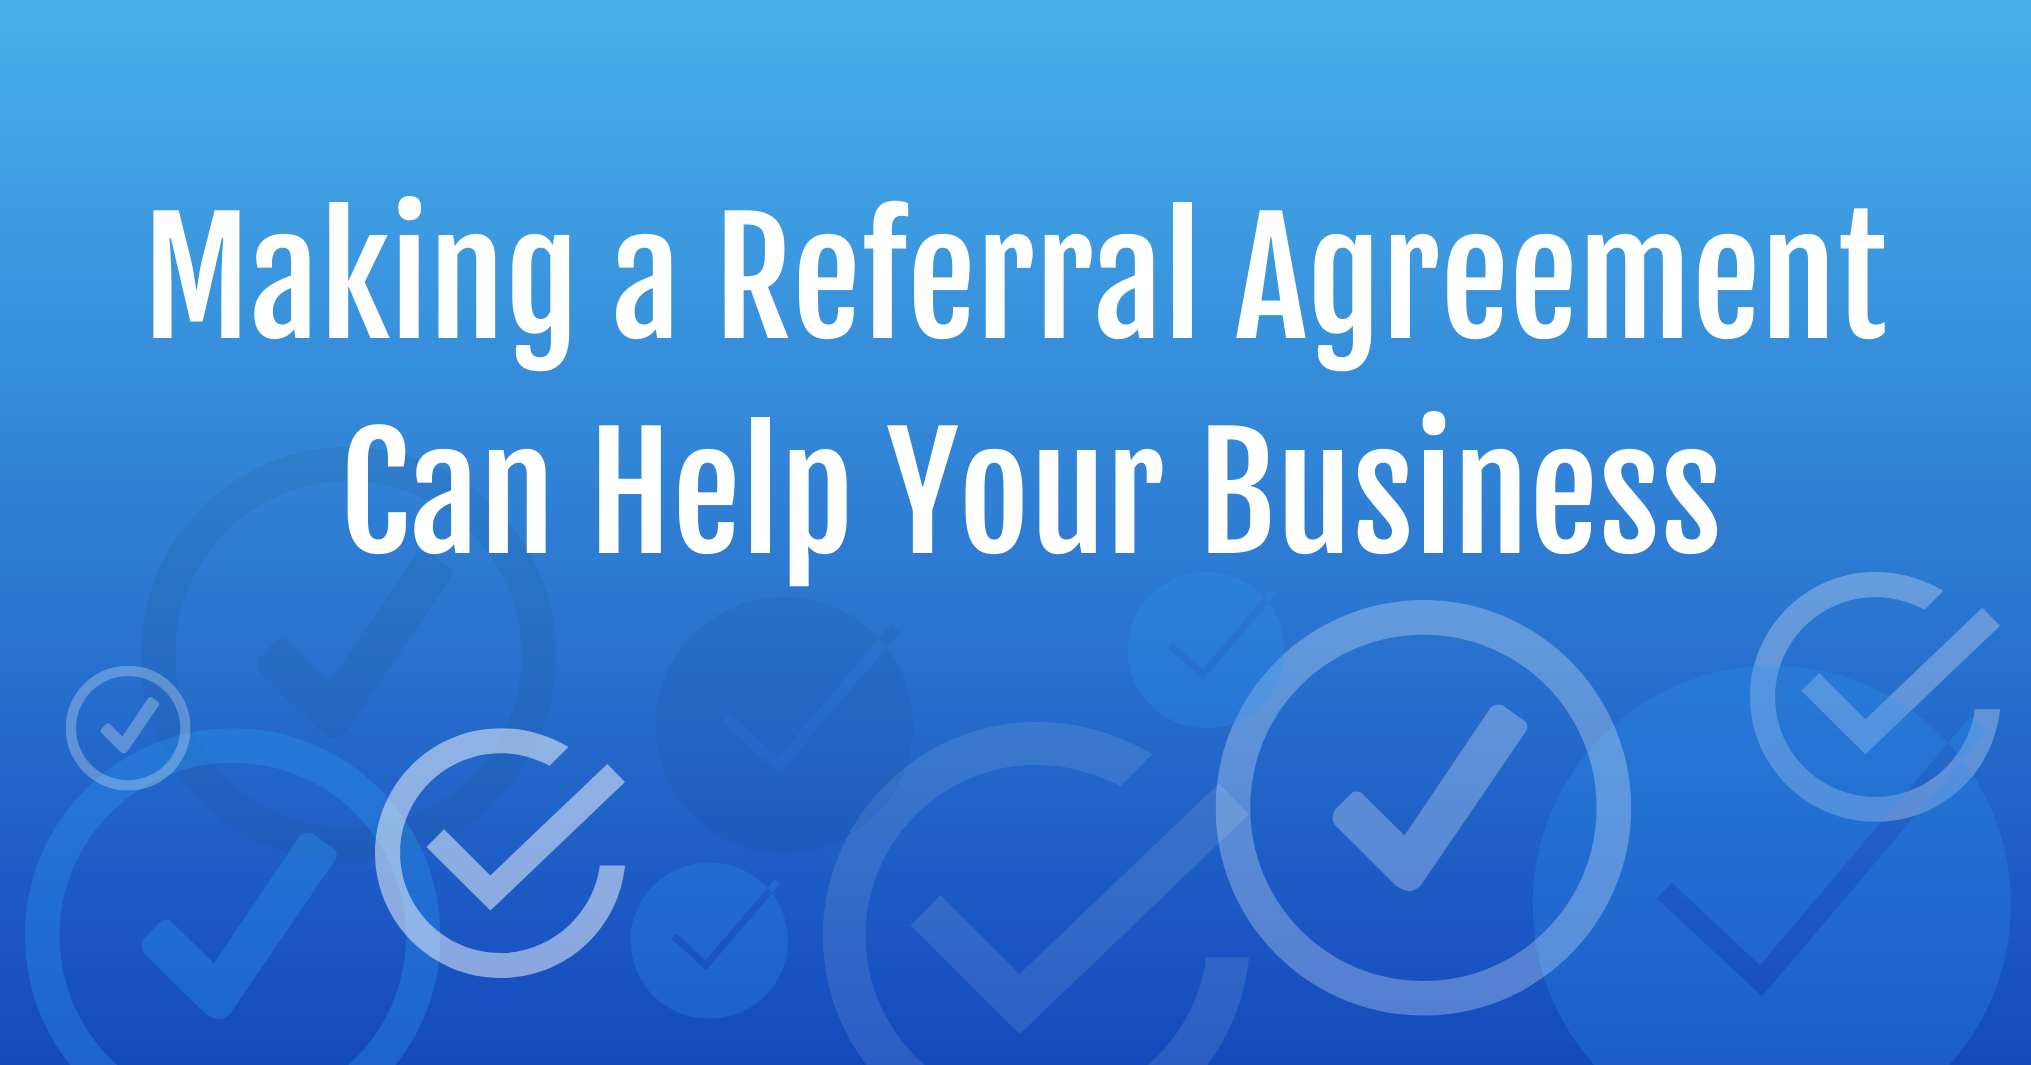 Making a Referral Agreement Can Help Your Business